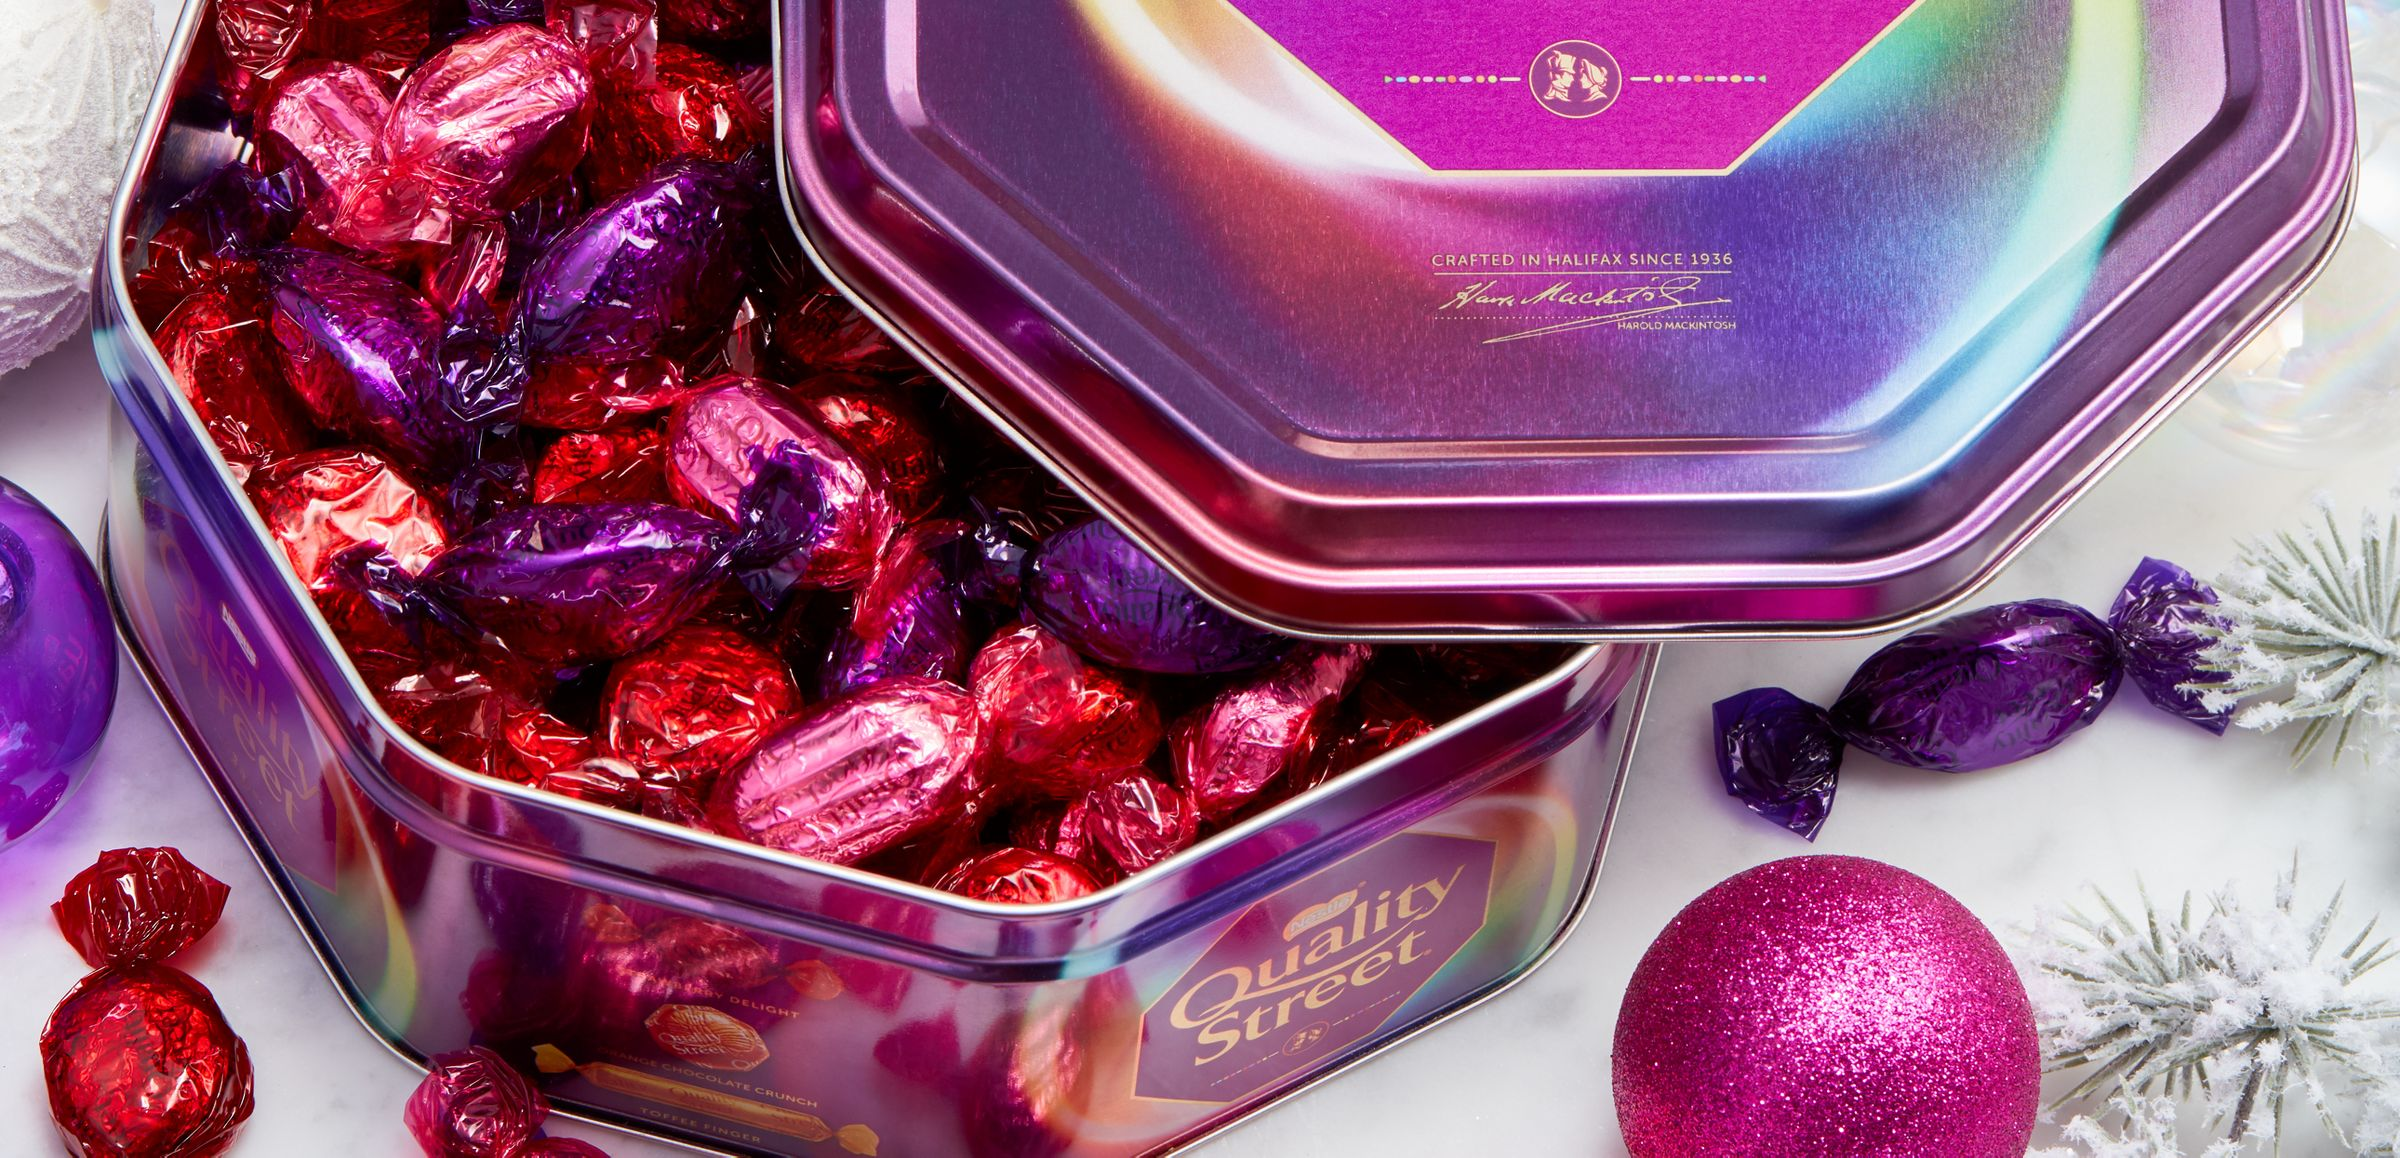 How To Customise Quality Street At John Lewis And Partners